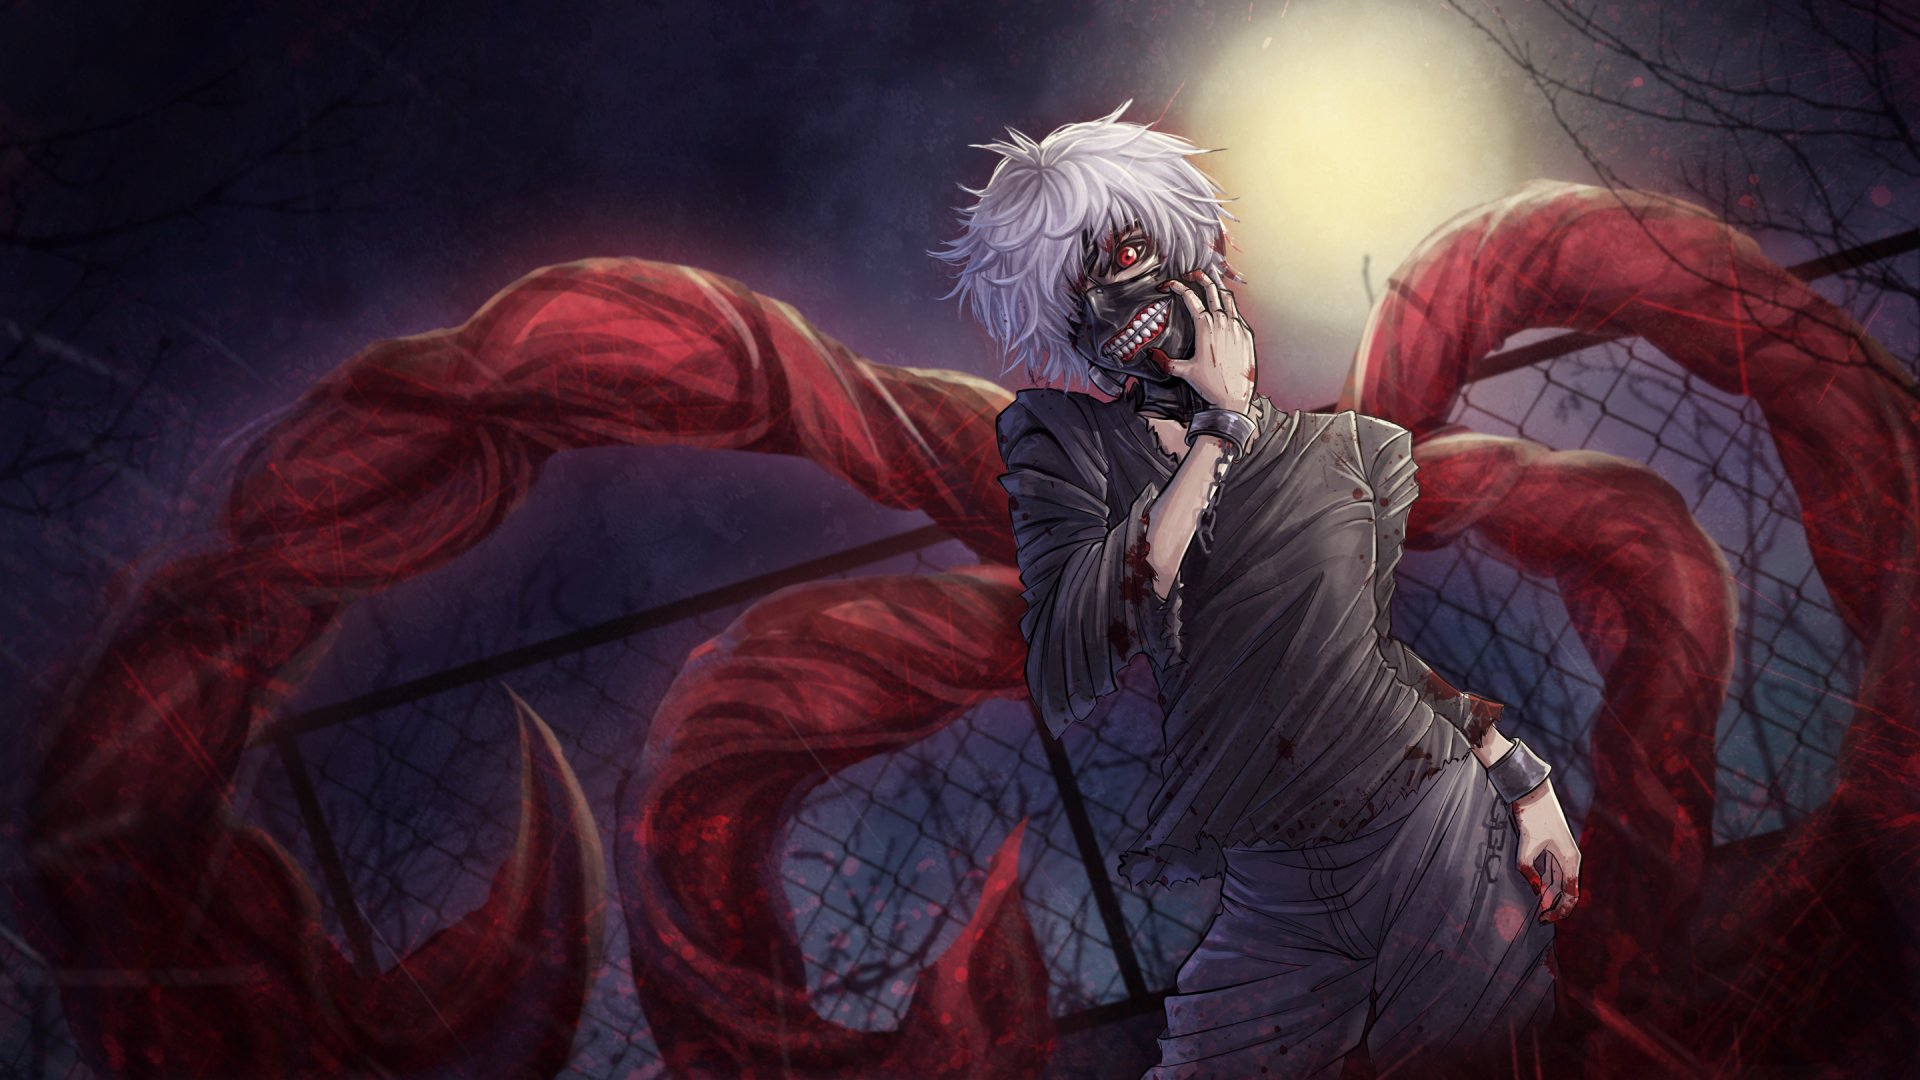 Tokyo ghoul hd wallpaper background image 2880x1620 id 596840 wallpaper abyss - 2880x1620 wallpaper ...